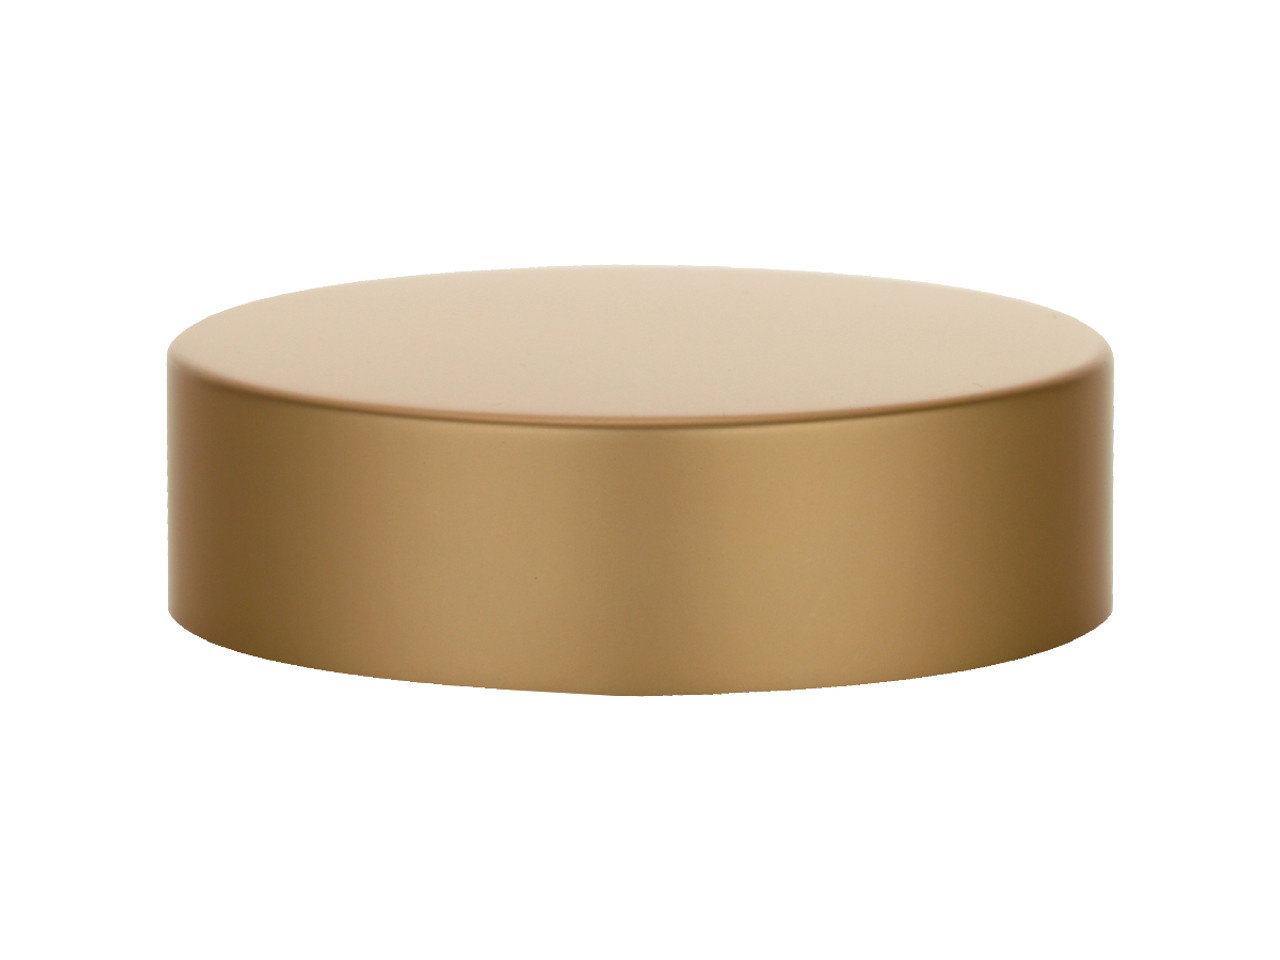 PLASTIC CAPS, METAL SHELLED CLOSURE WITH A 70/400 FINISH, INCLUDES A FOAM LINER, BY MPCH, EXTRA TALL